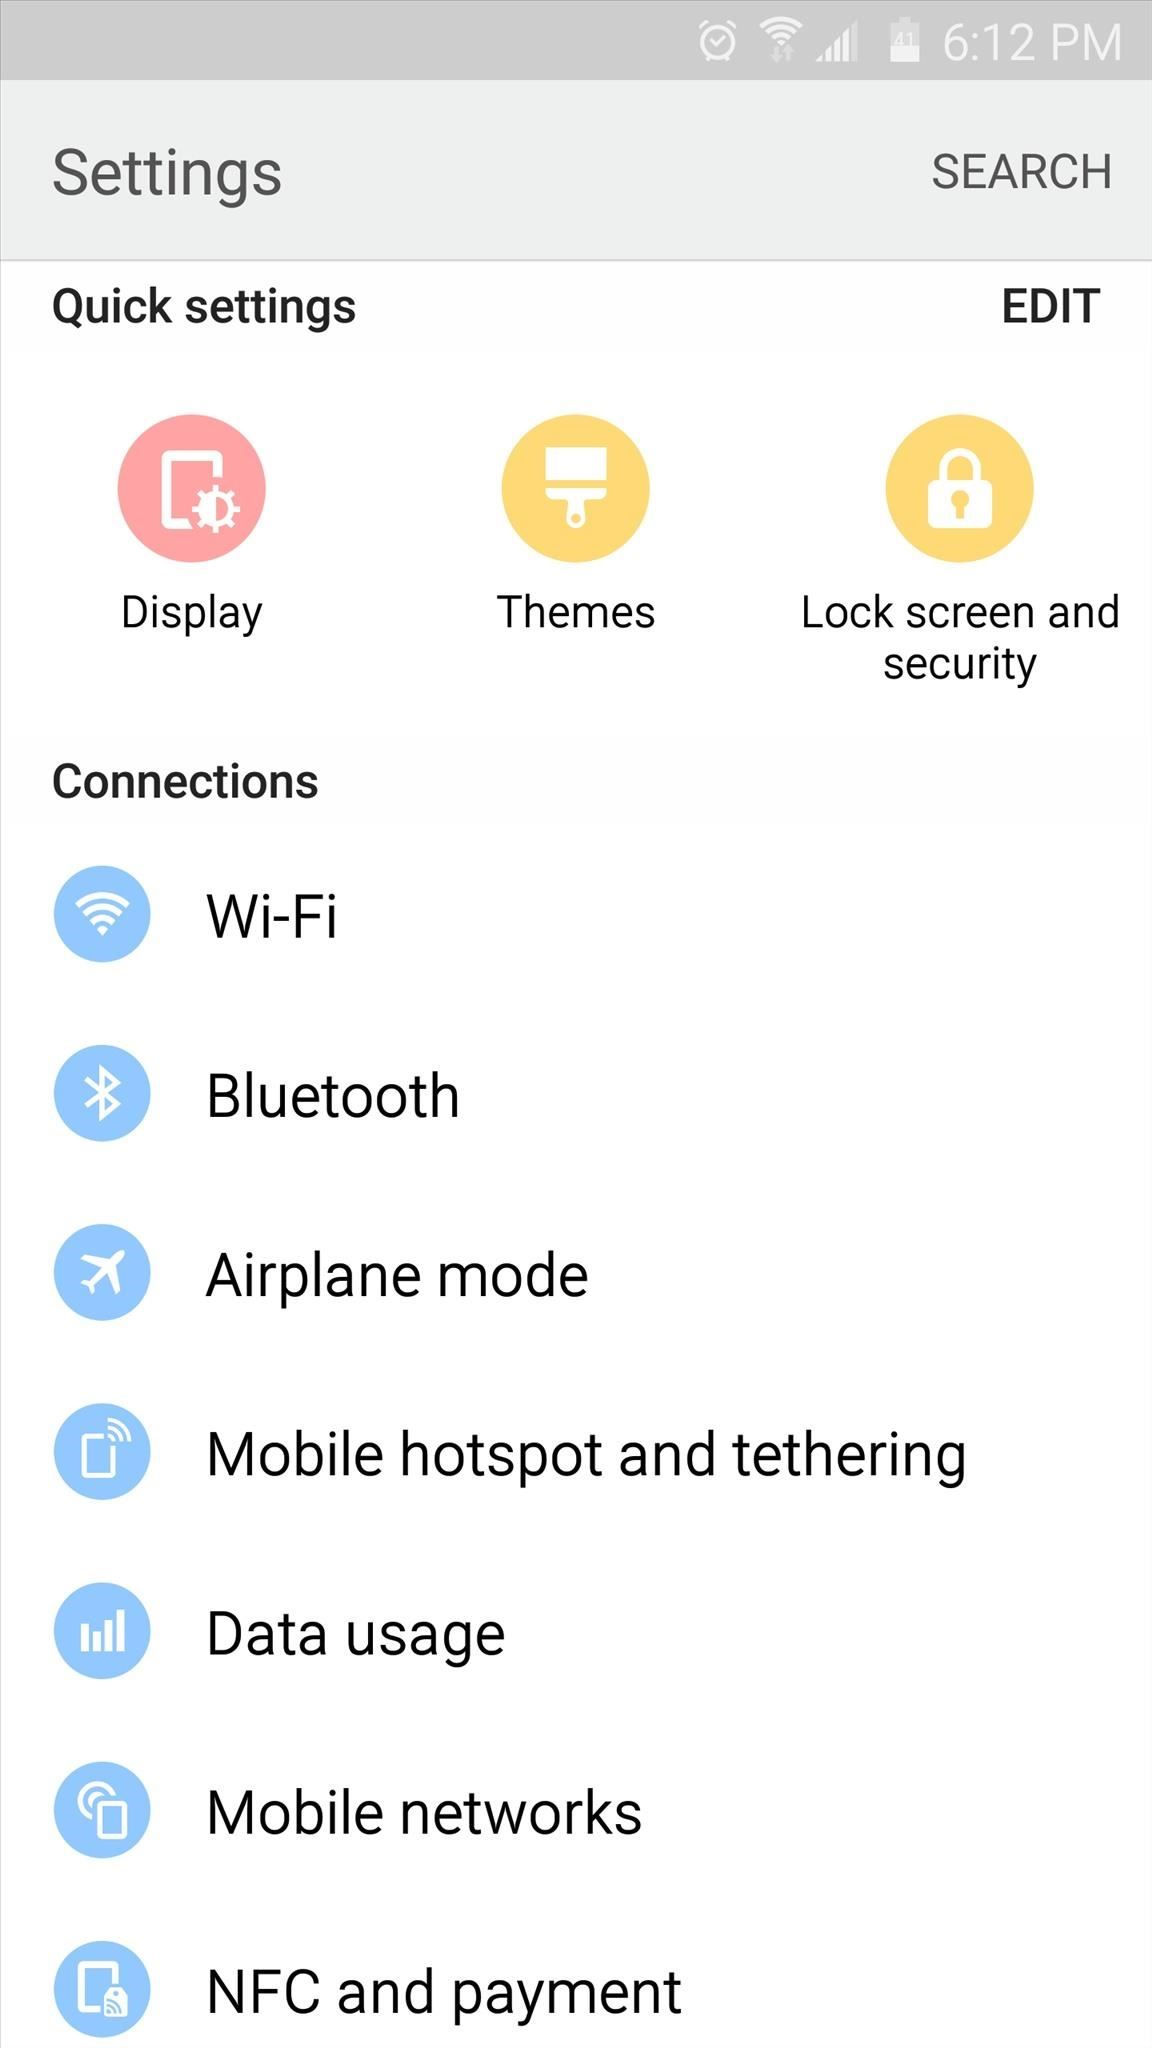 20 Official Samsung Galaxy Themes That Don't Totally Suck « Samsung